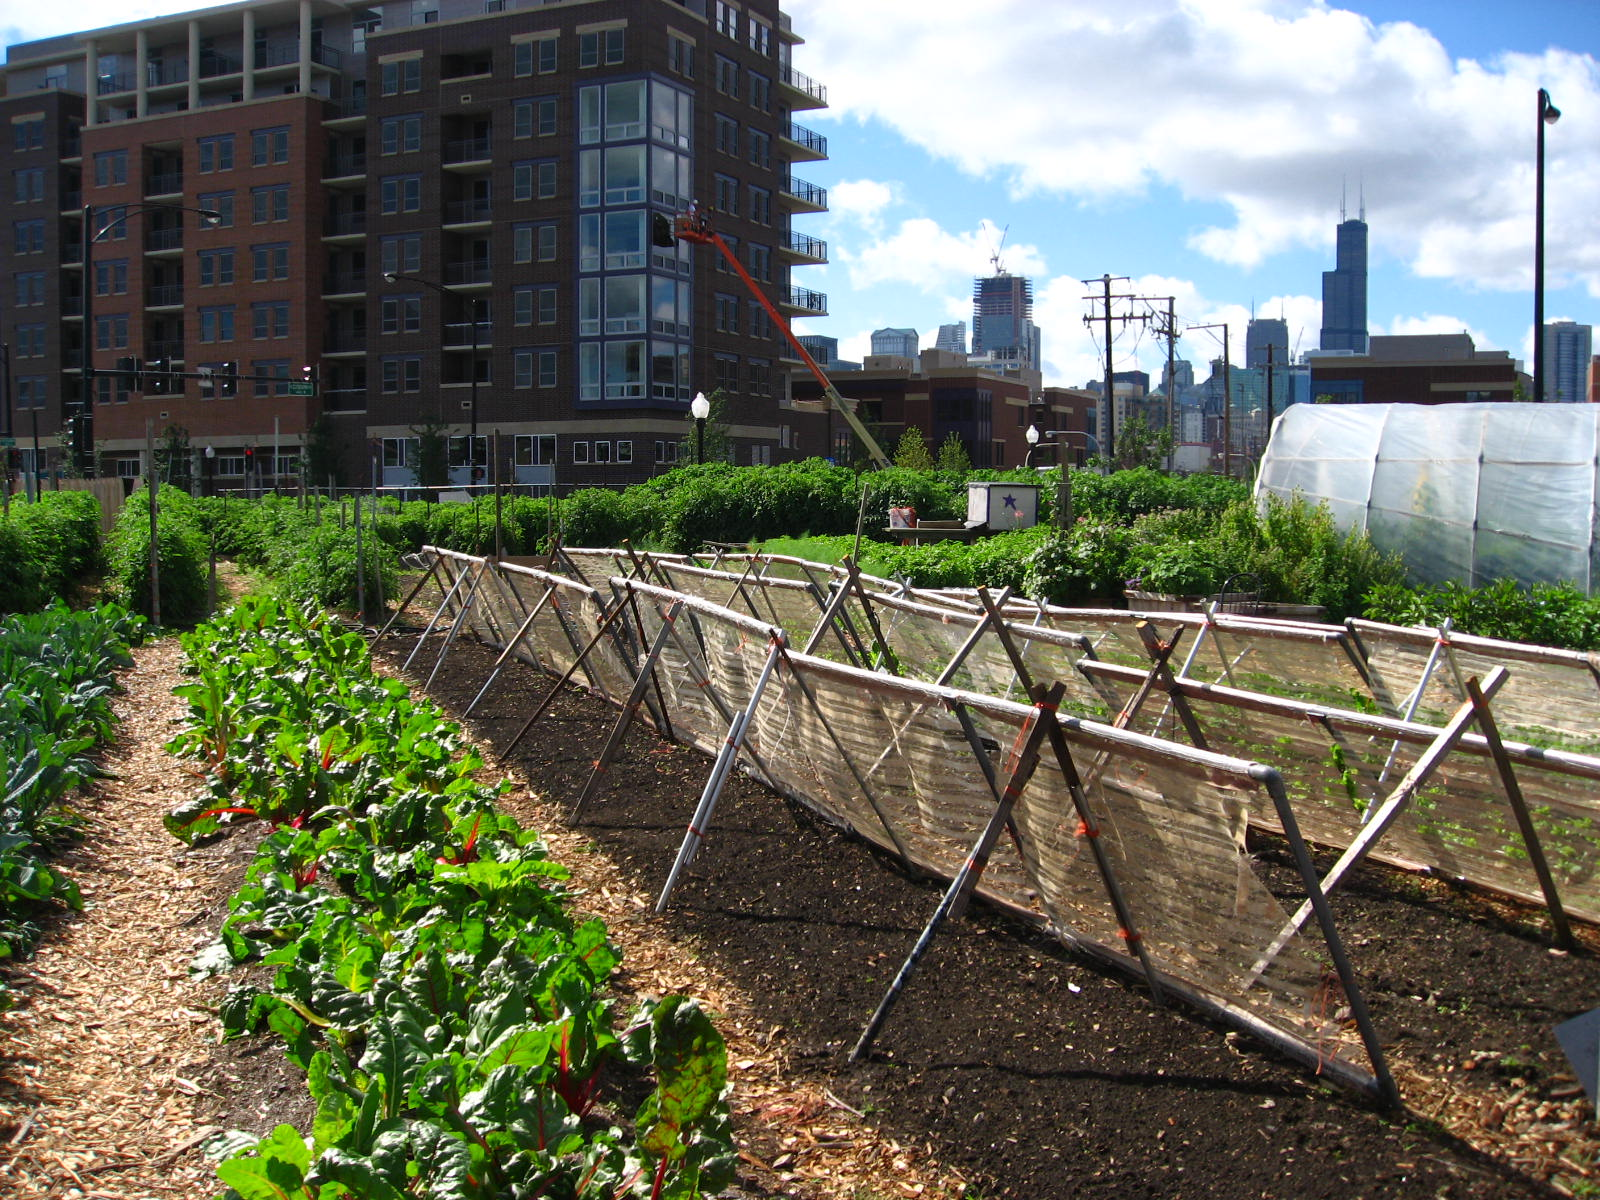 Urban Gardens - Healthy Agriculture